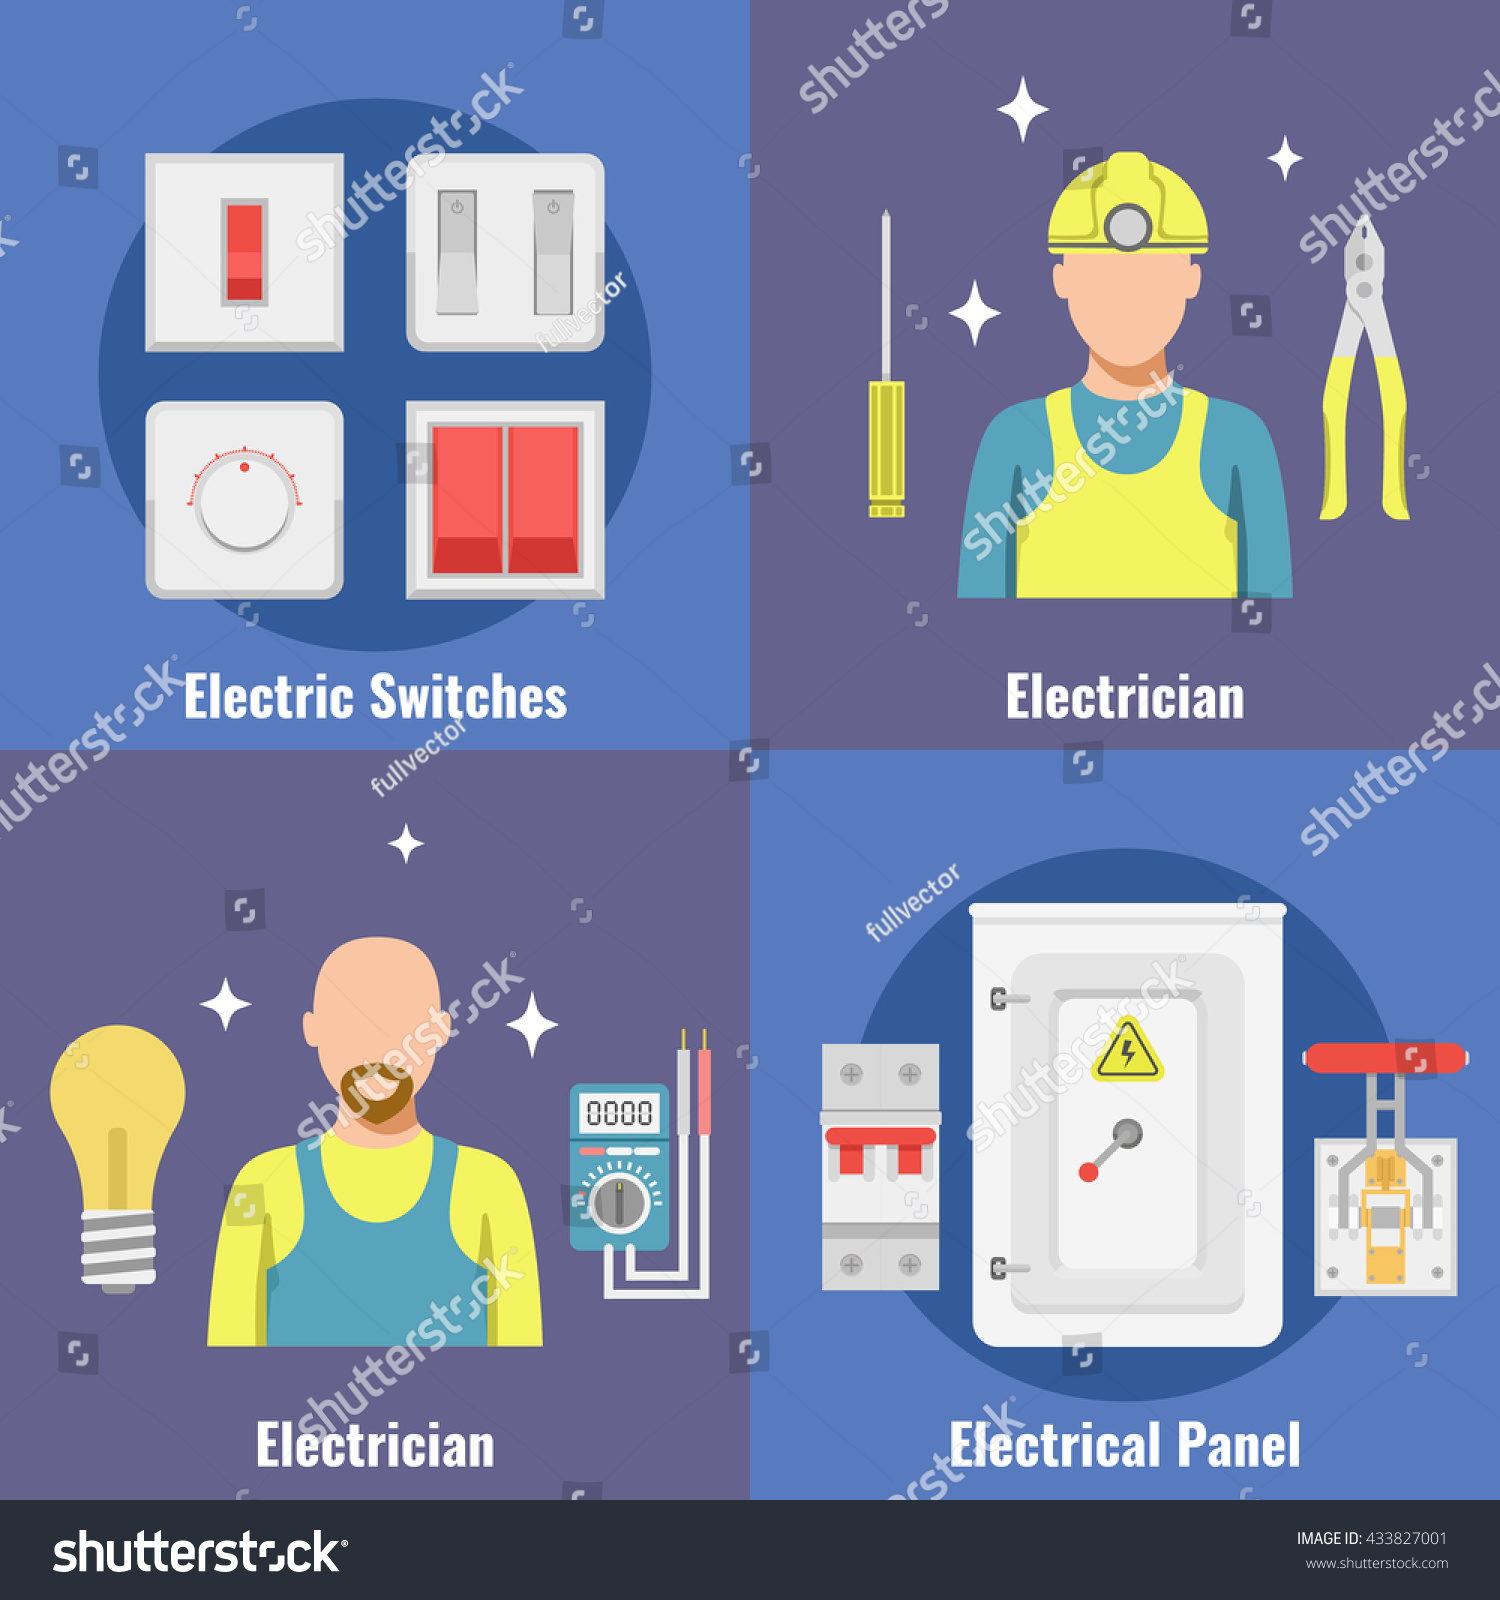 Breakers Set Switch Vector Flat Fuse Stock Royalty Free Electric Panel Boxes Box Circuit Electrical